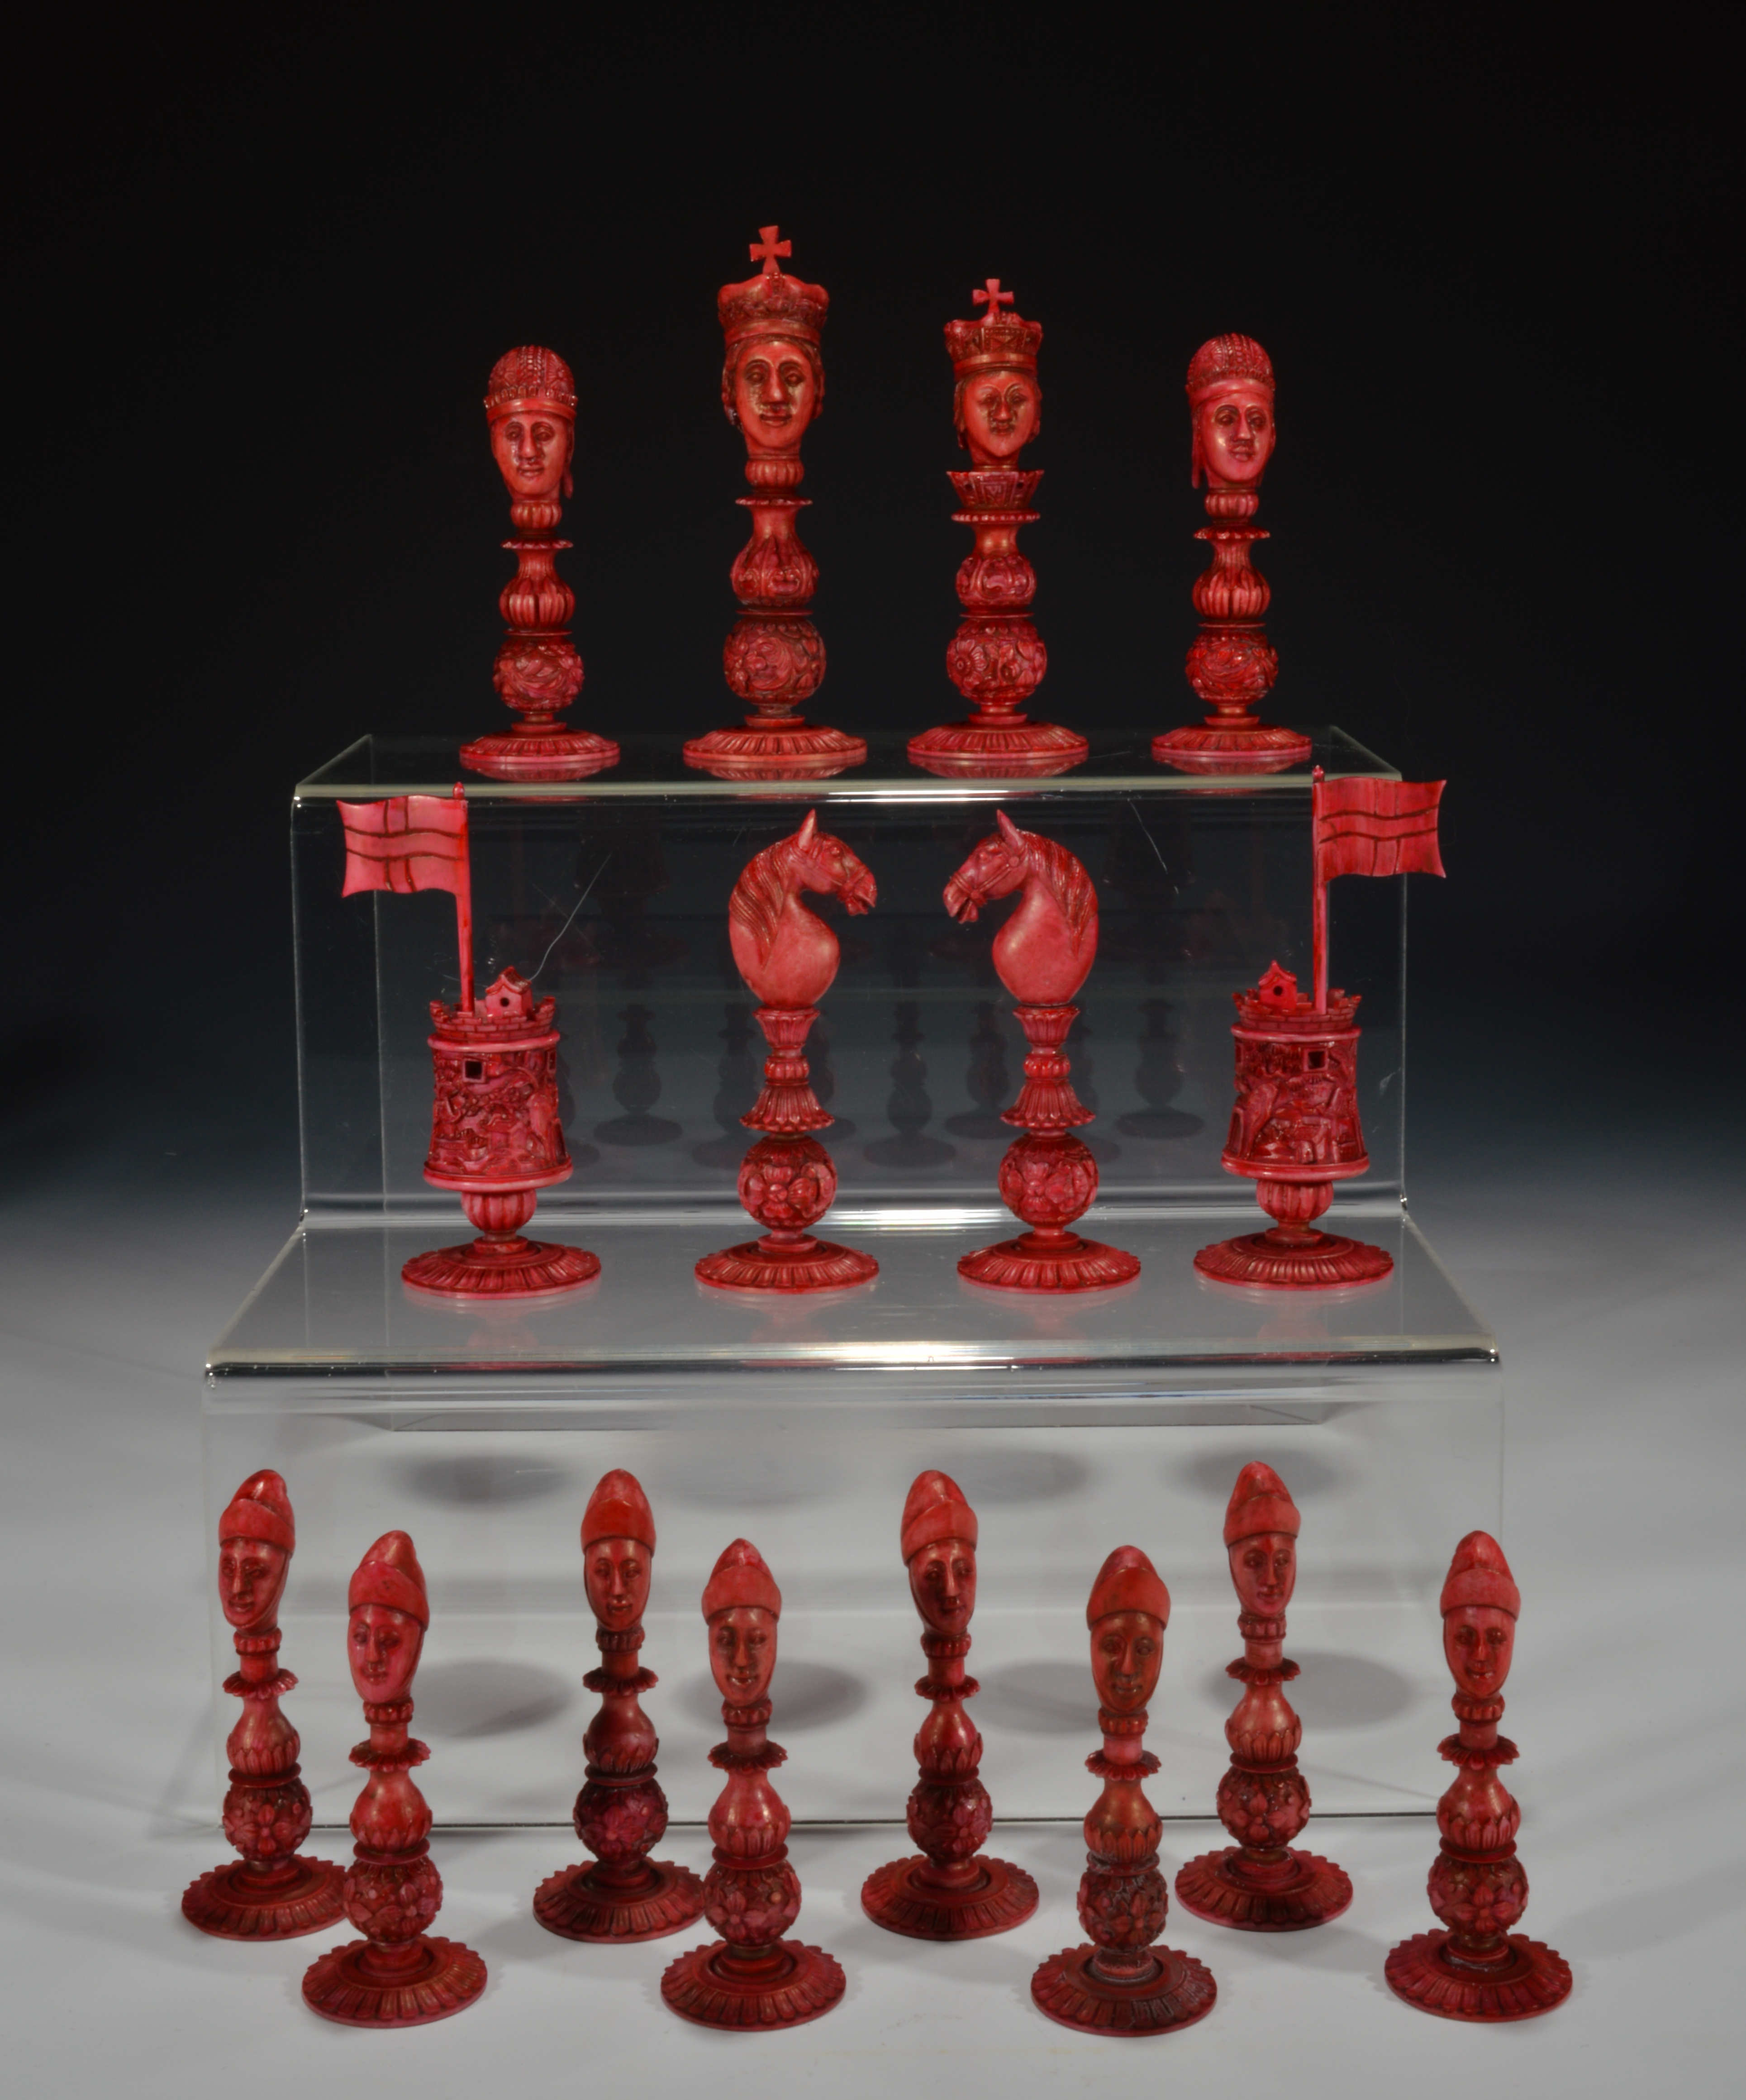 Antique macao ivory figural chess set - Collectible chess sets ...